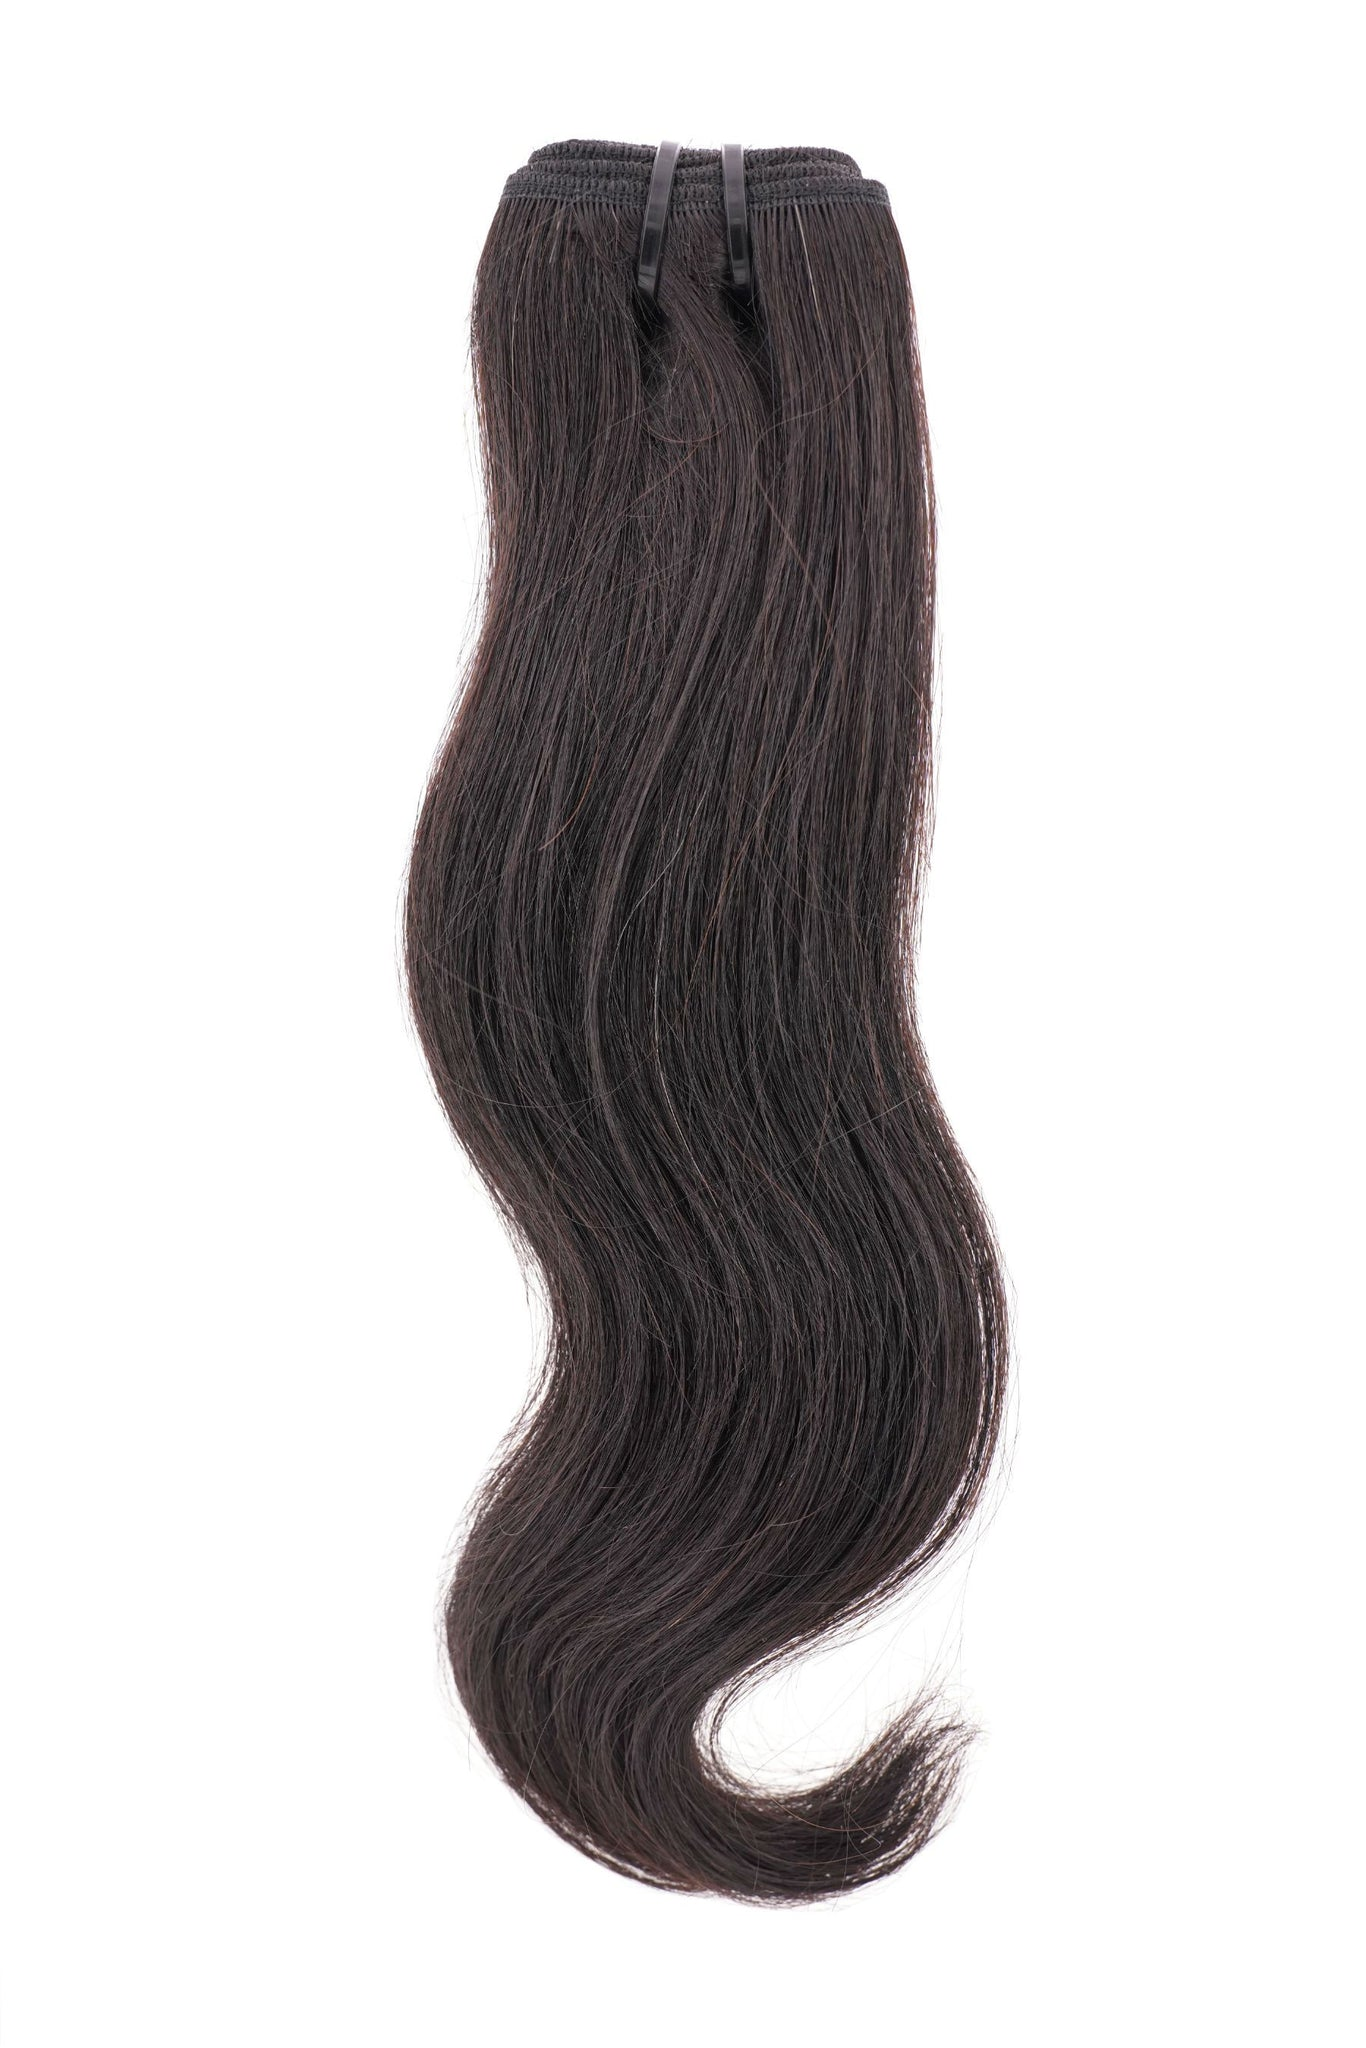 Vietnamese Straight - CEO - Crown Envy Obsession, best crown hair extension